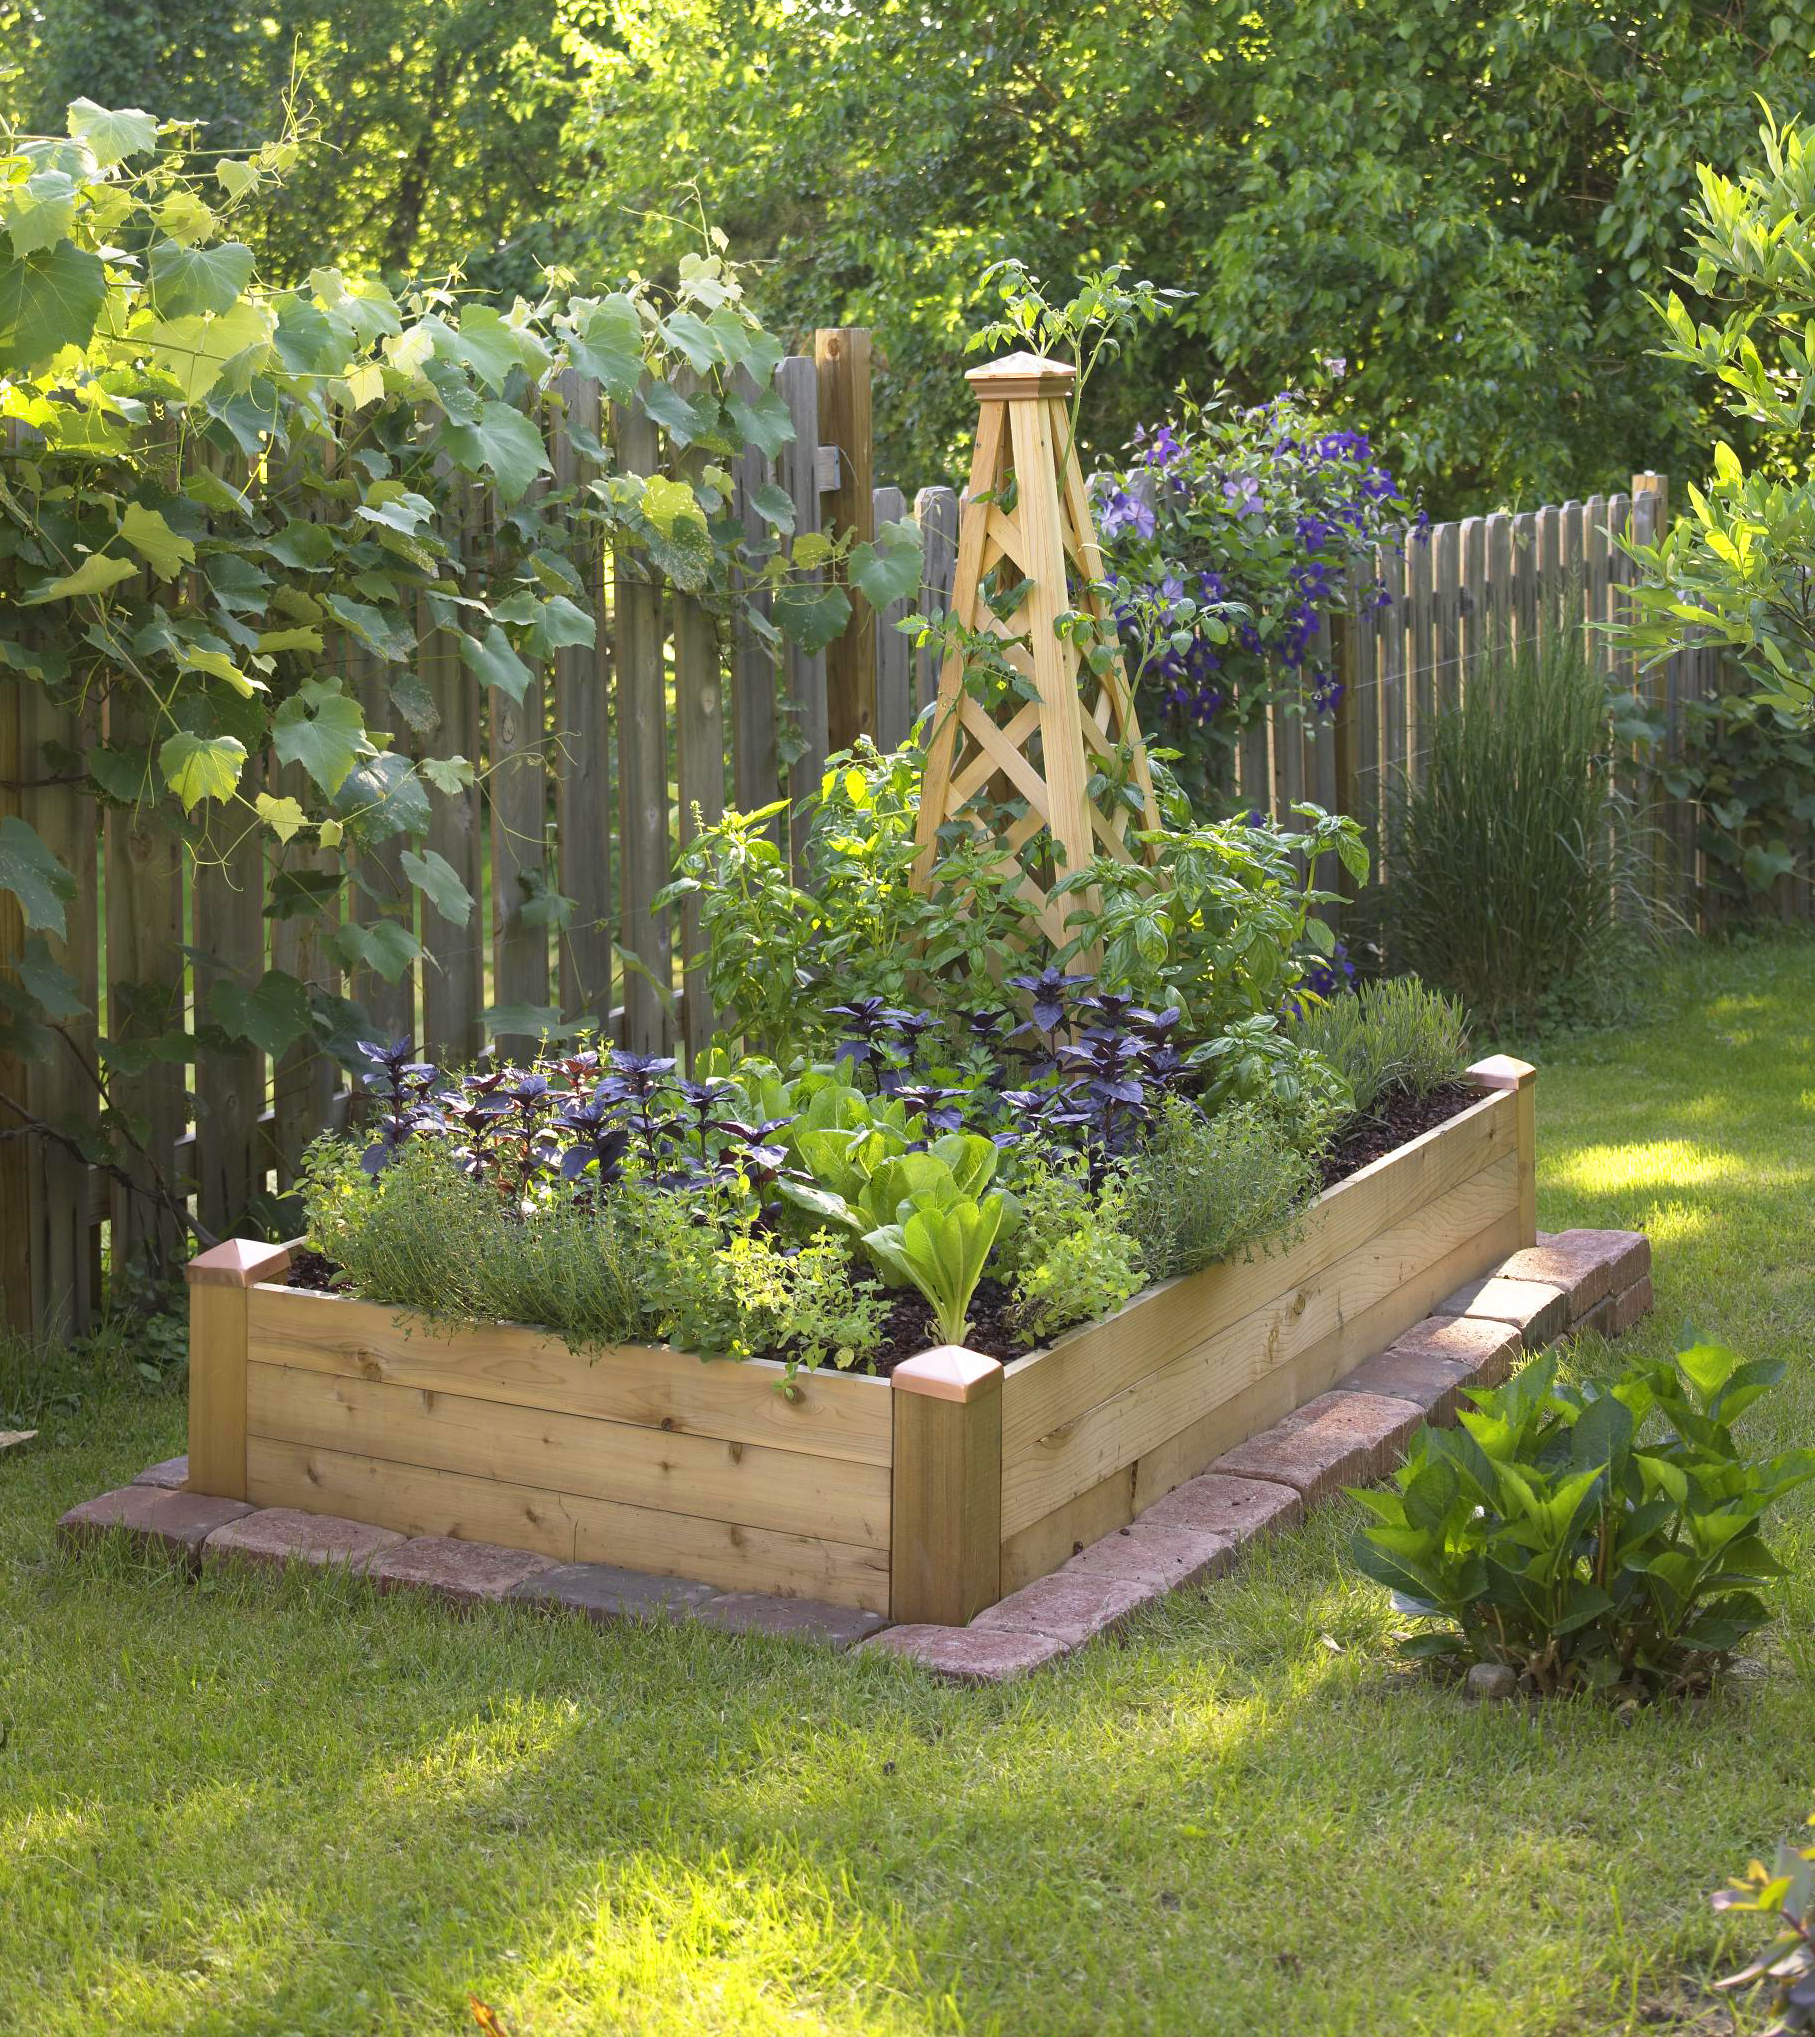 Small space gardening build a tiny raised bed midwest for Small planting bed ideas